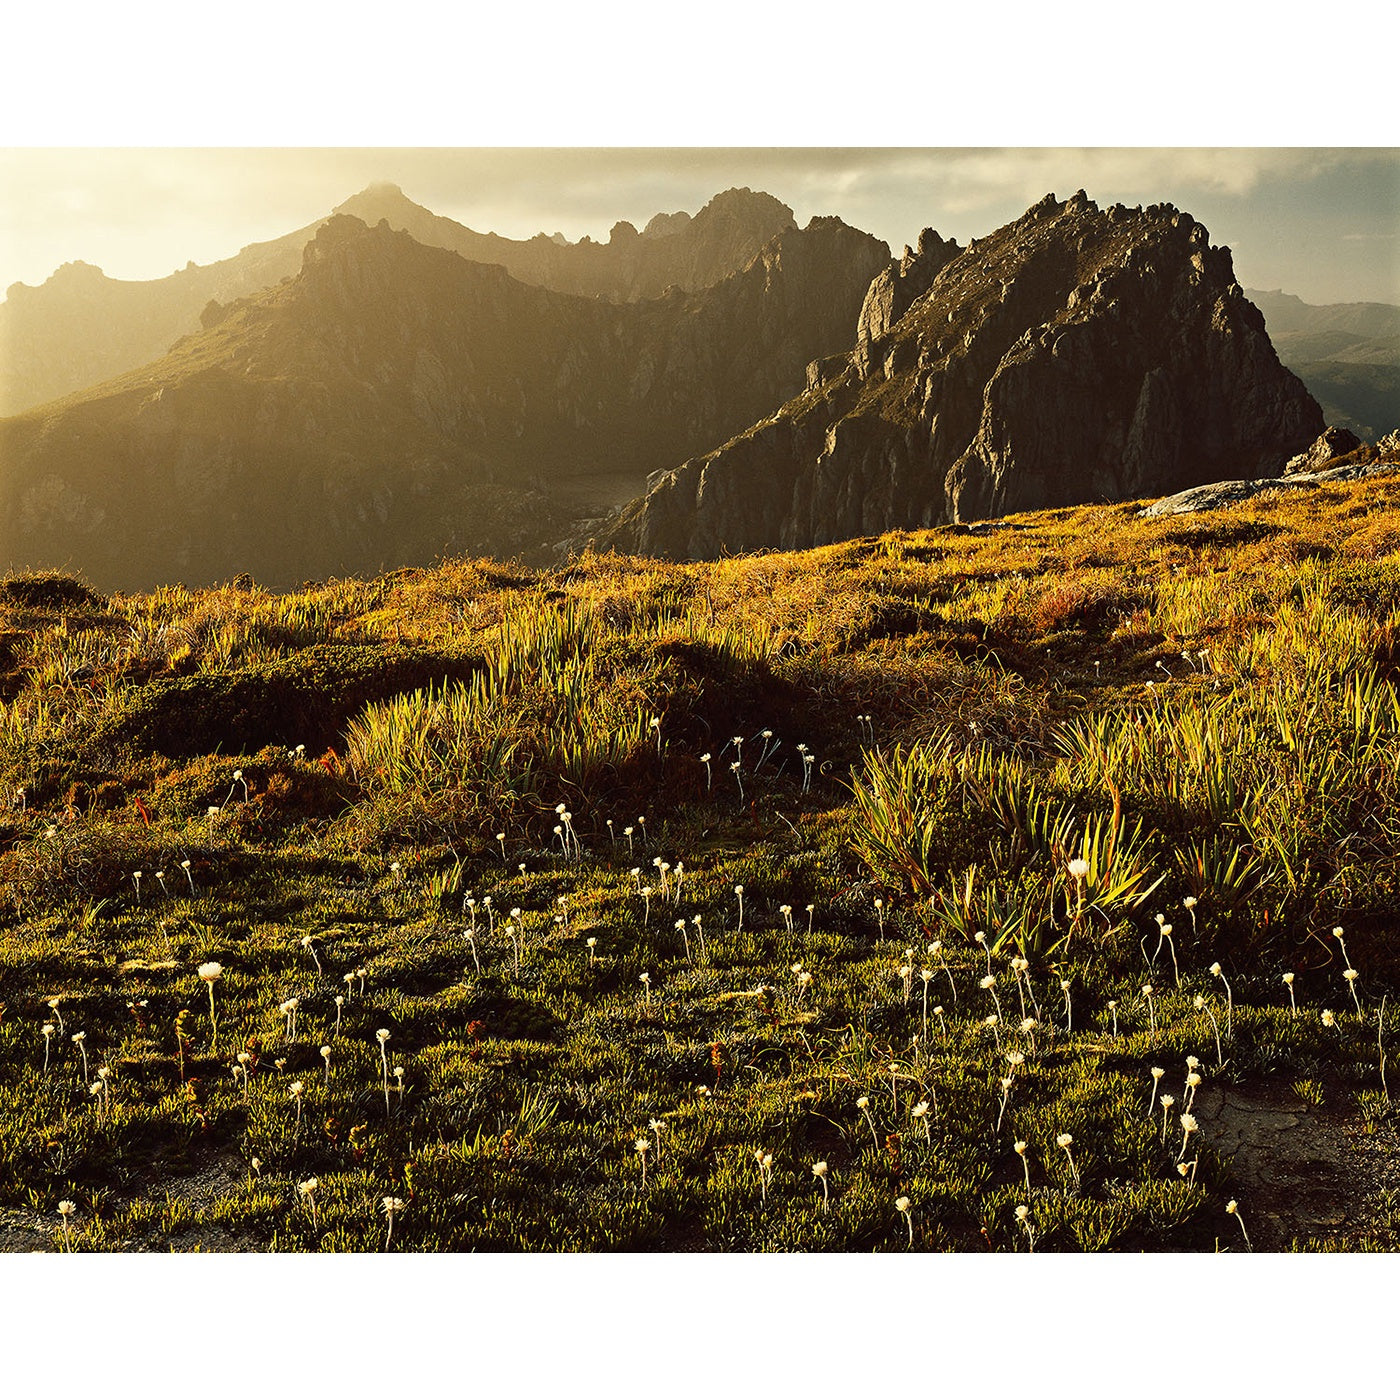 Peter Dombrovskis - Western Arthurs